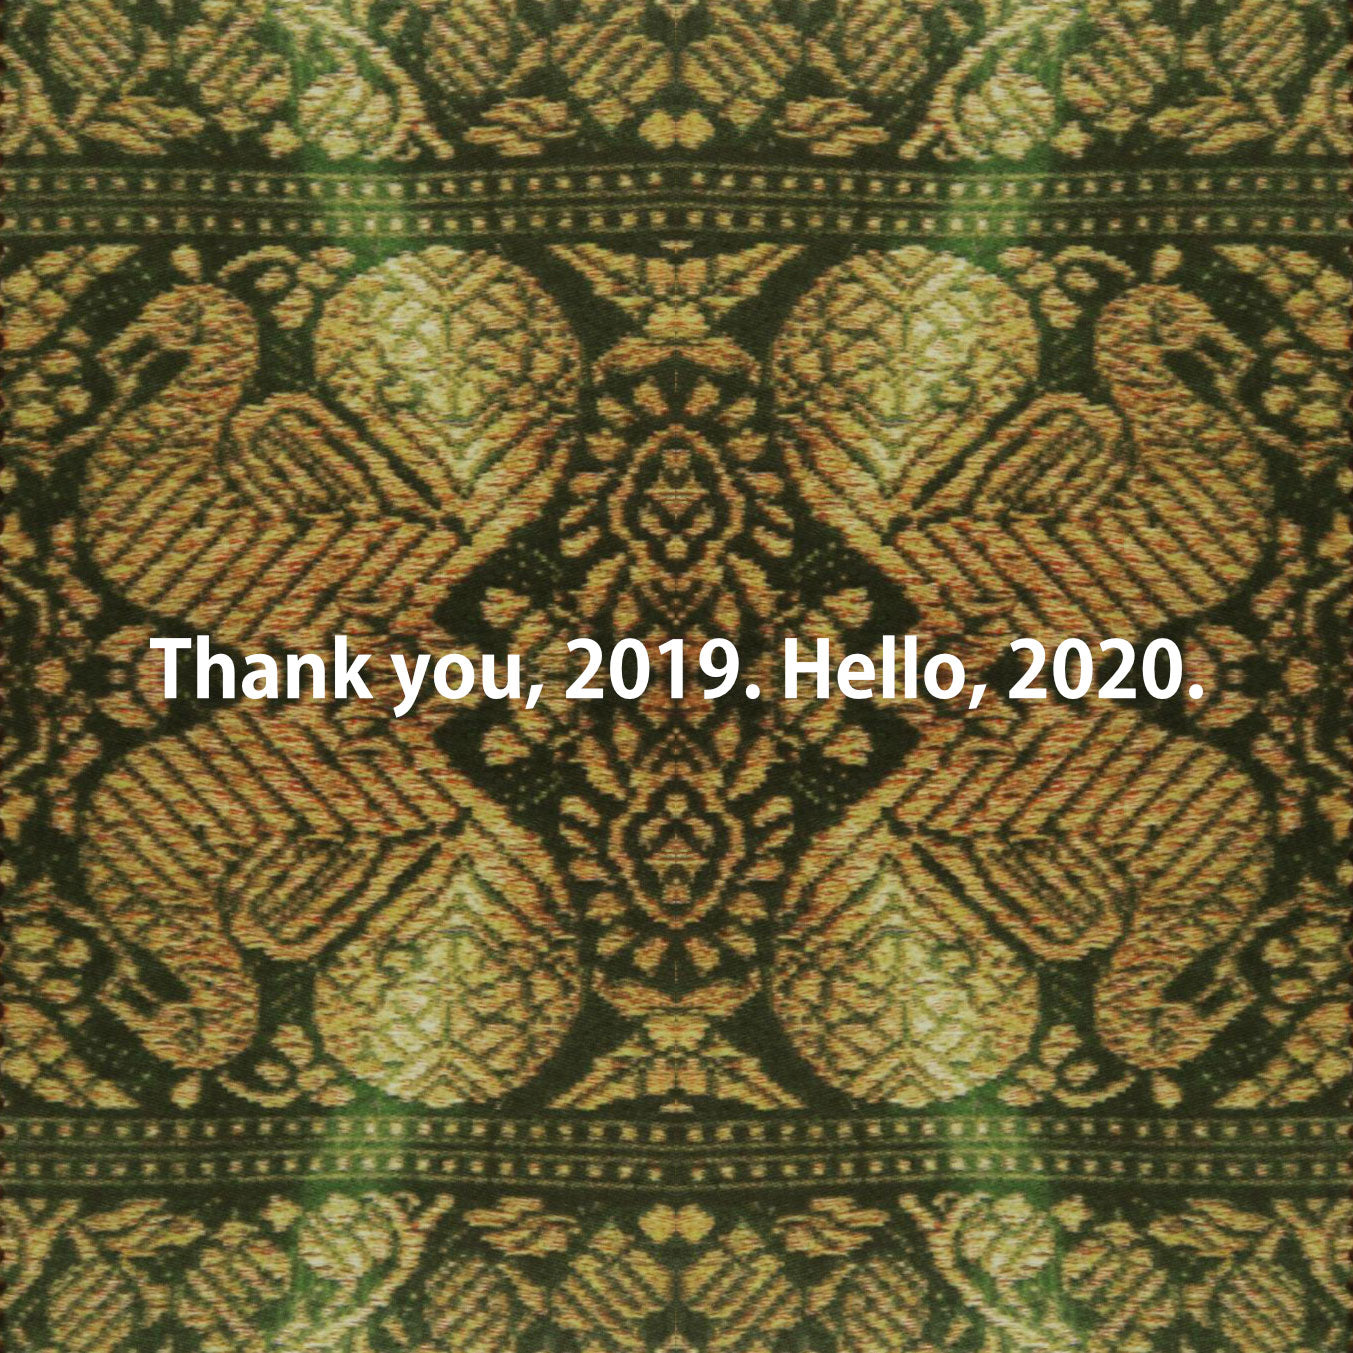 Thank you, 2019. Hello, 2020.